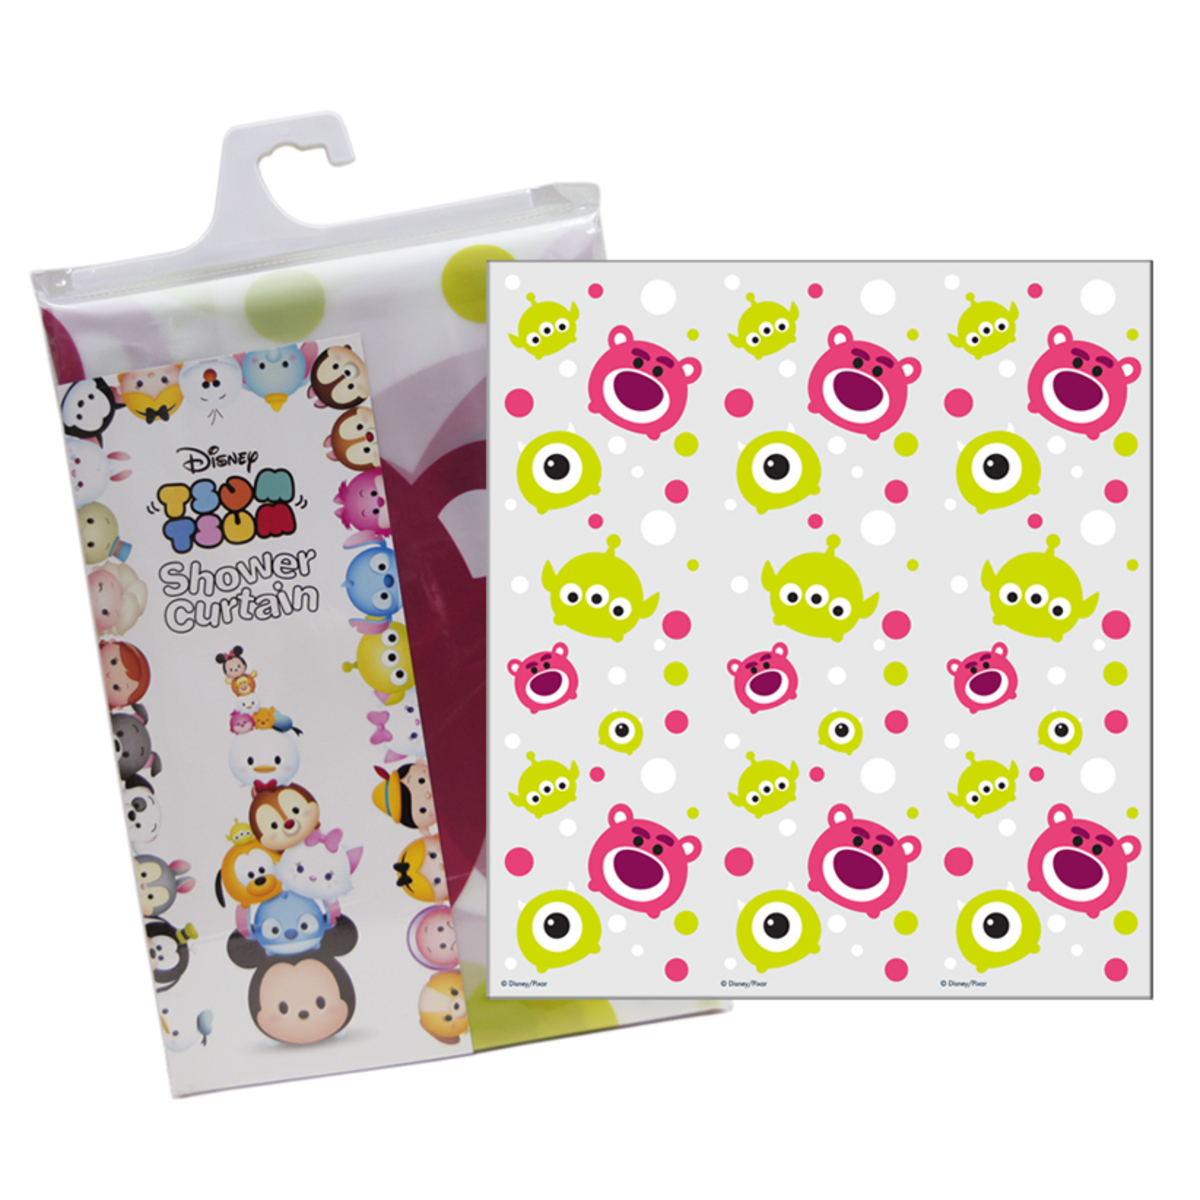 Shower Curtain (Lotso) (Licensed by Disney)